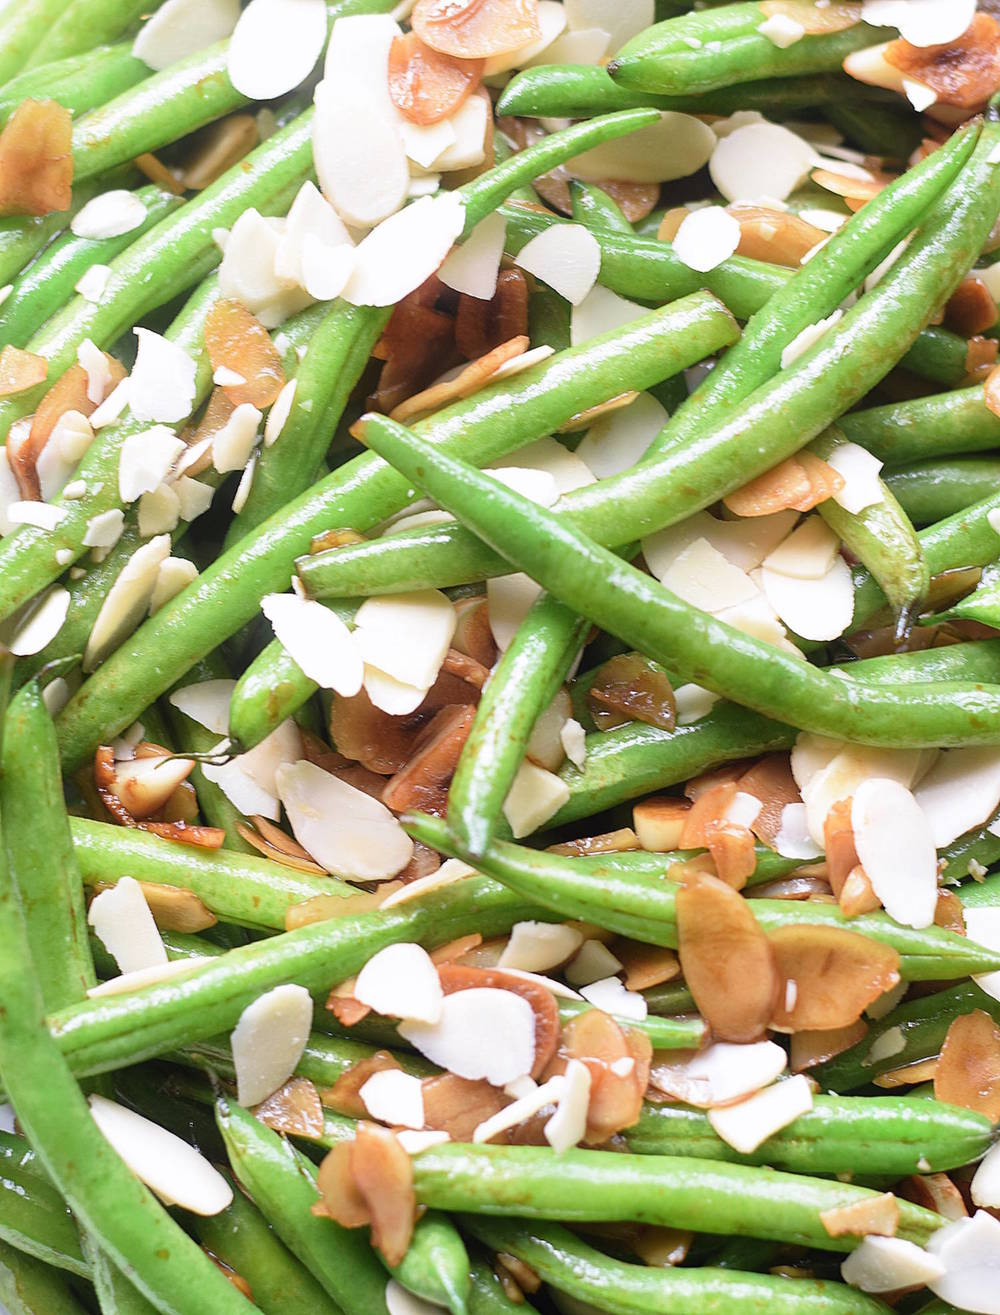 Sautéed Green Beans with Garlic and Almonds: quick, easy, wholesome side dish with green beans, fresh garlic, and sliced almonds. So good! | TrufflesandTrends.com